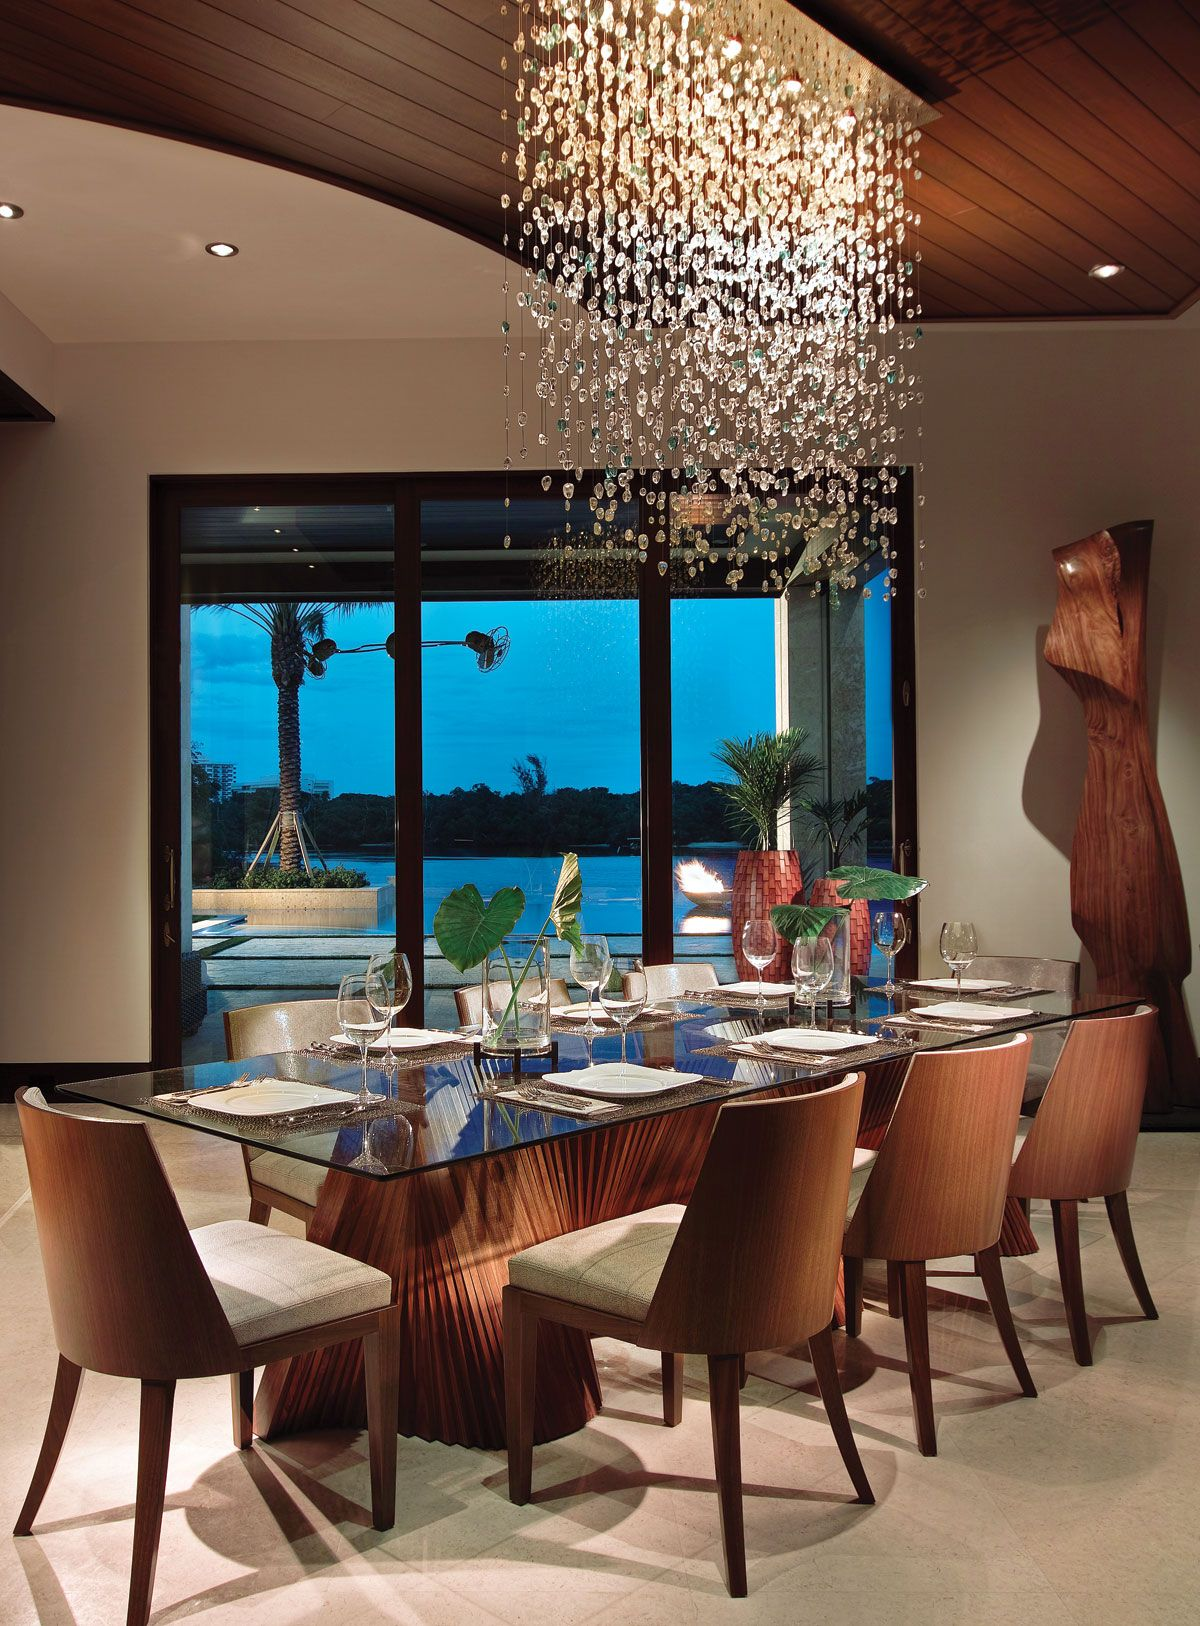 Home Florida Design Tropical Dining Room Dining Room Contemporary Modern Chandelier Dining